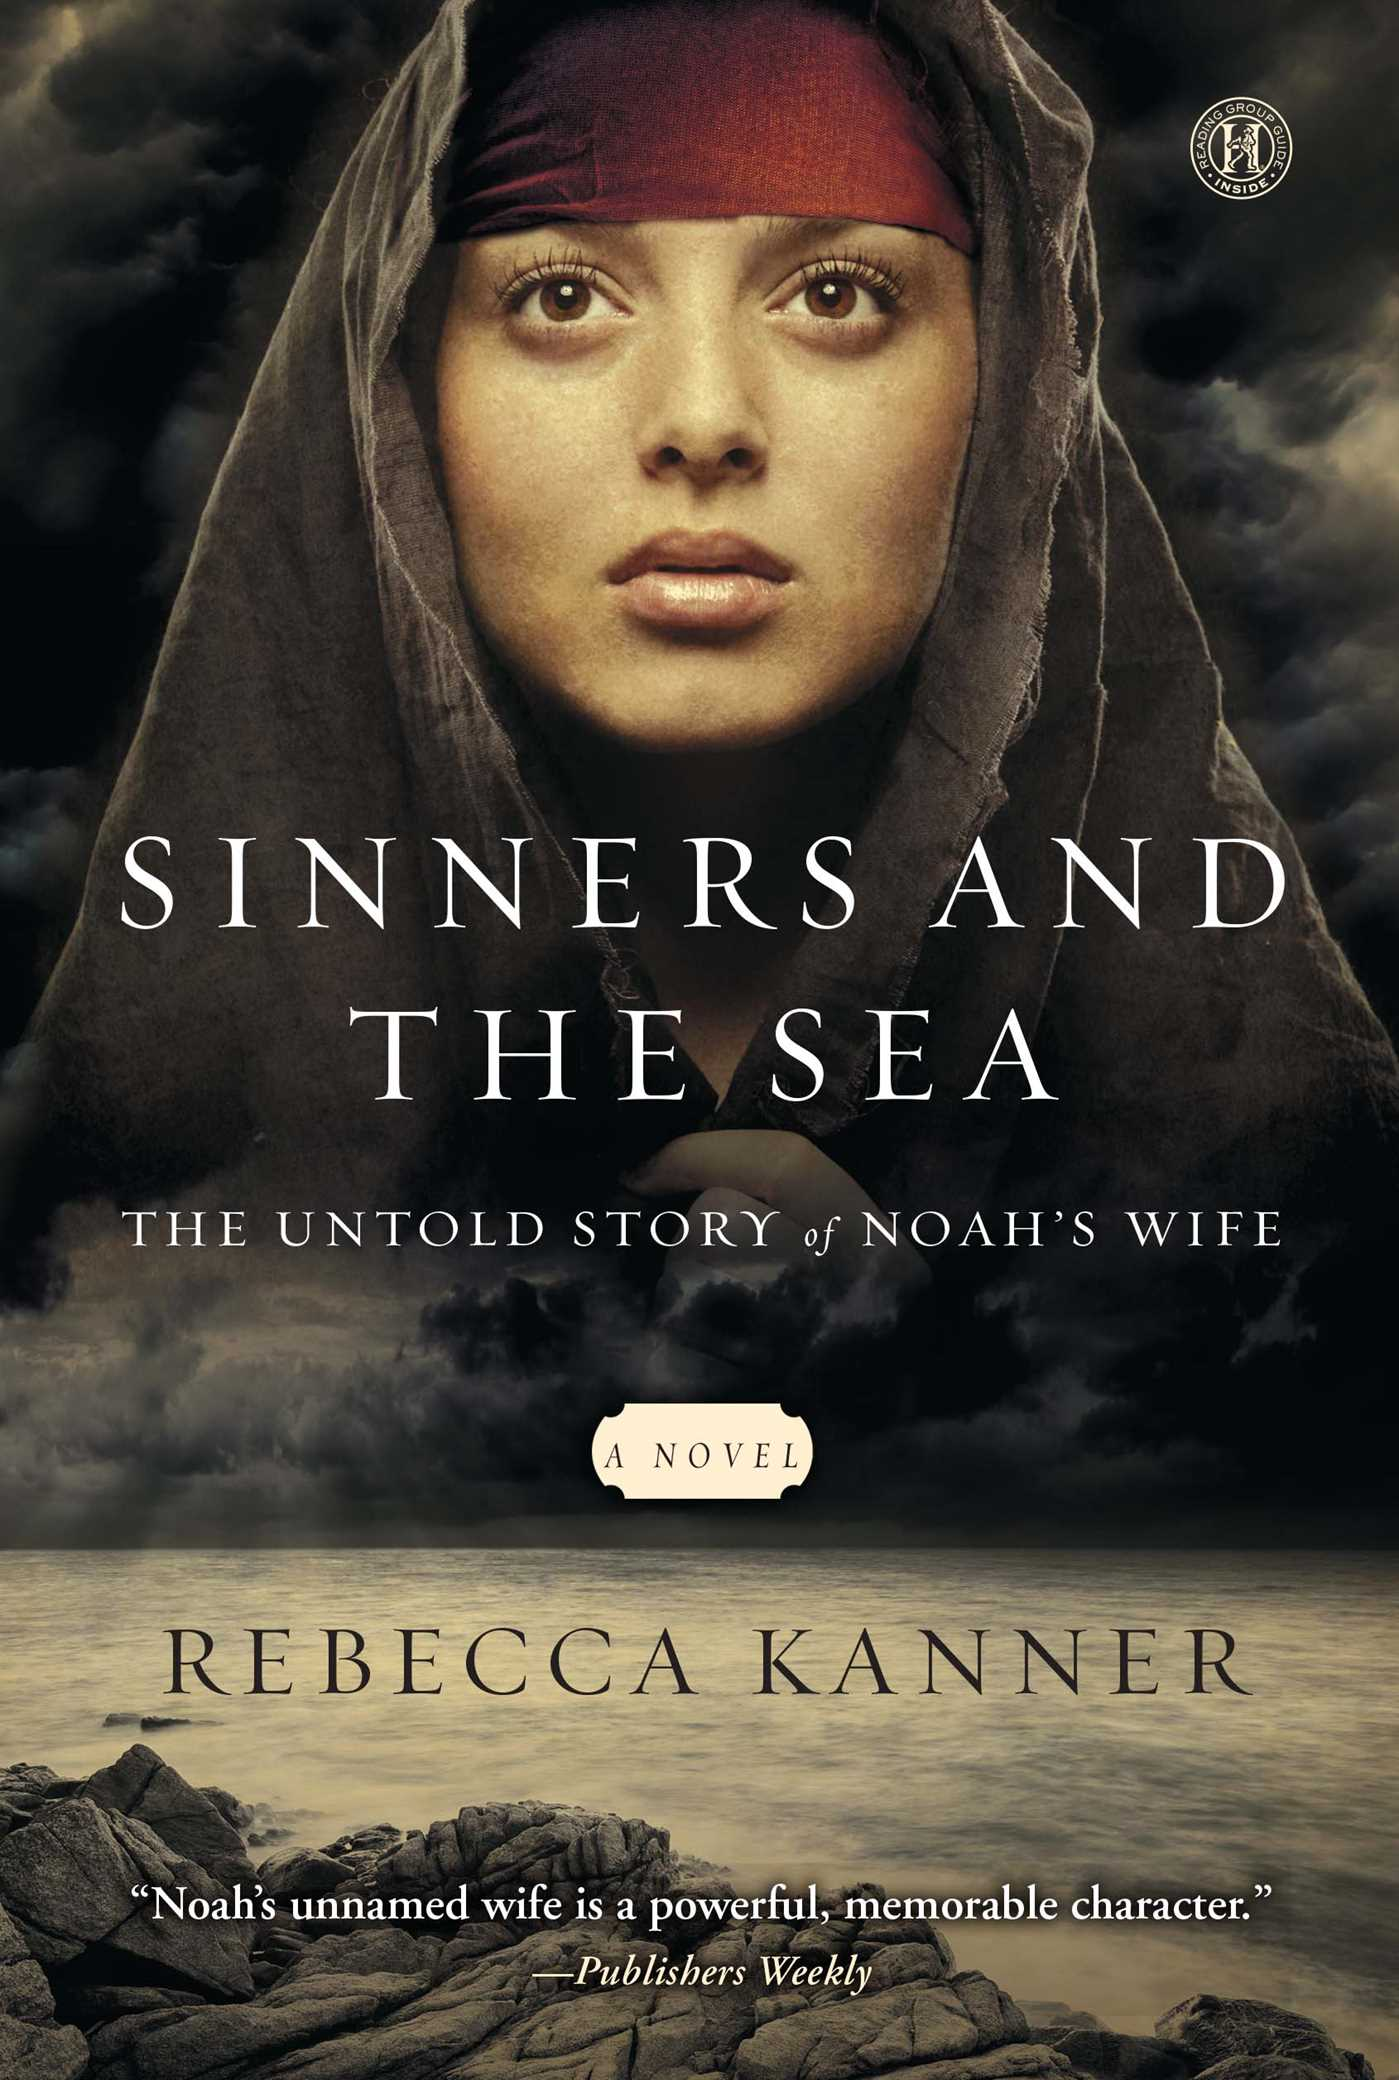 Sinners-and-the-sea-9781451695250_hr